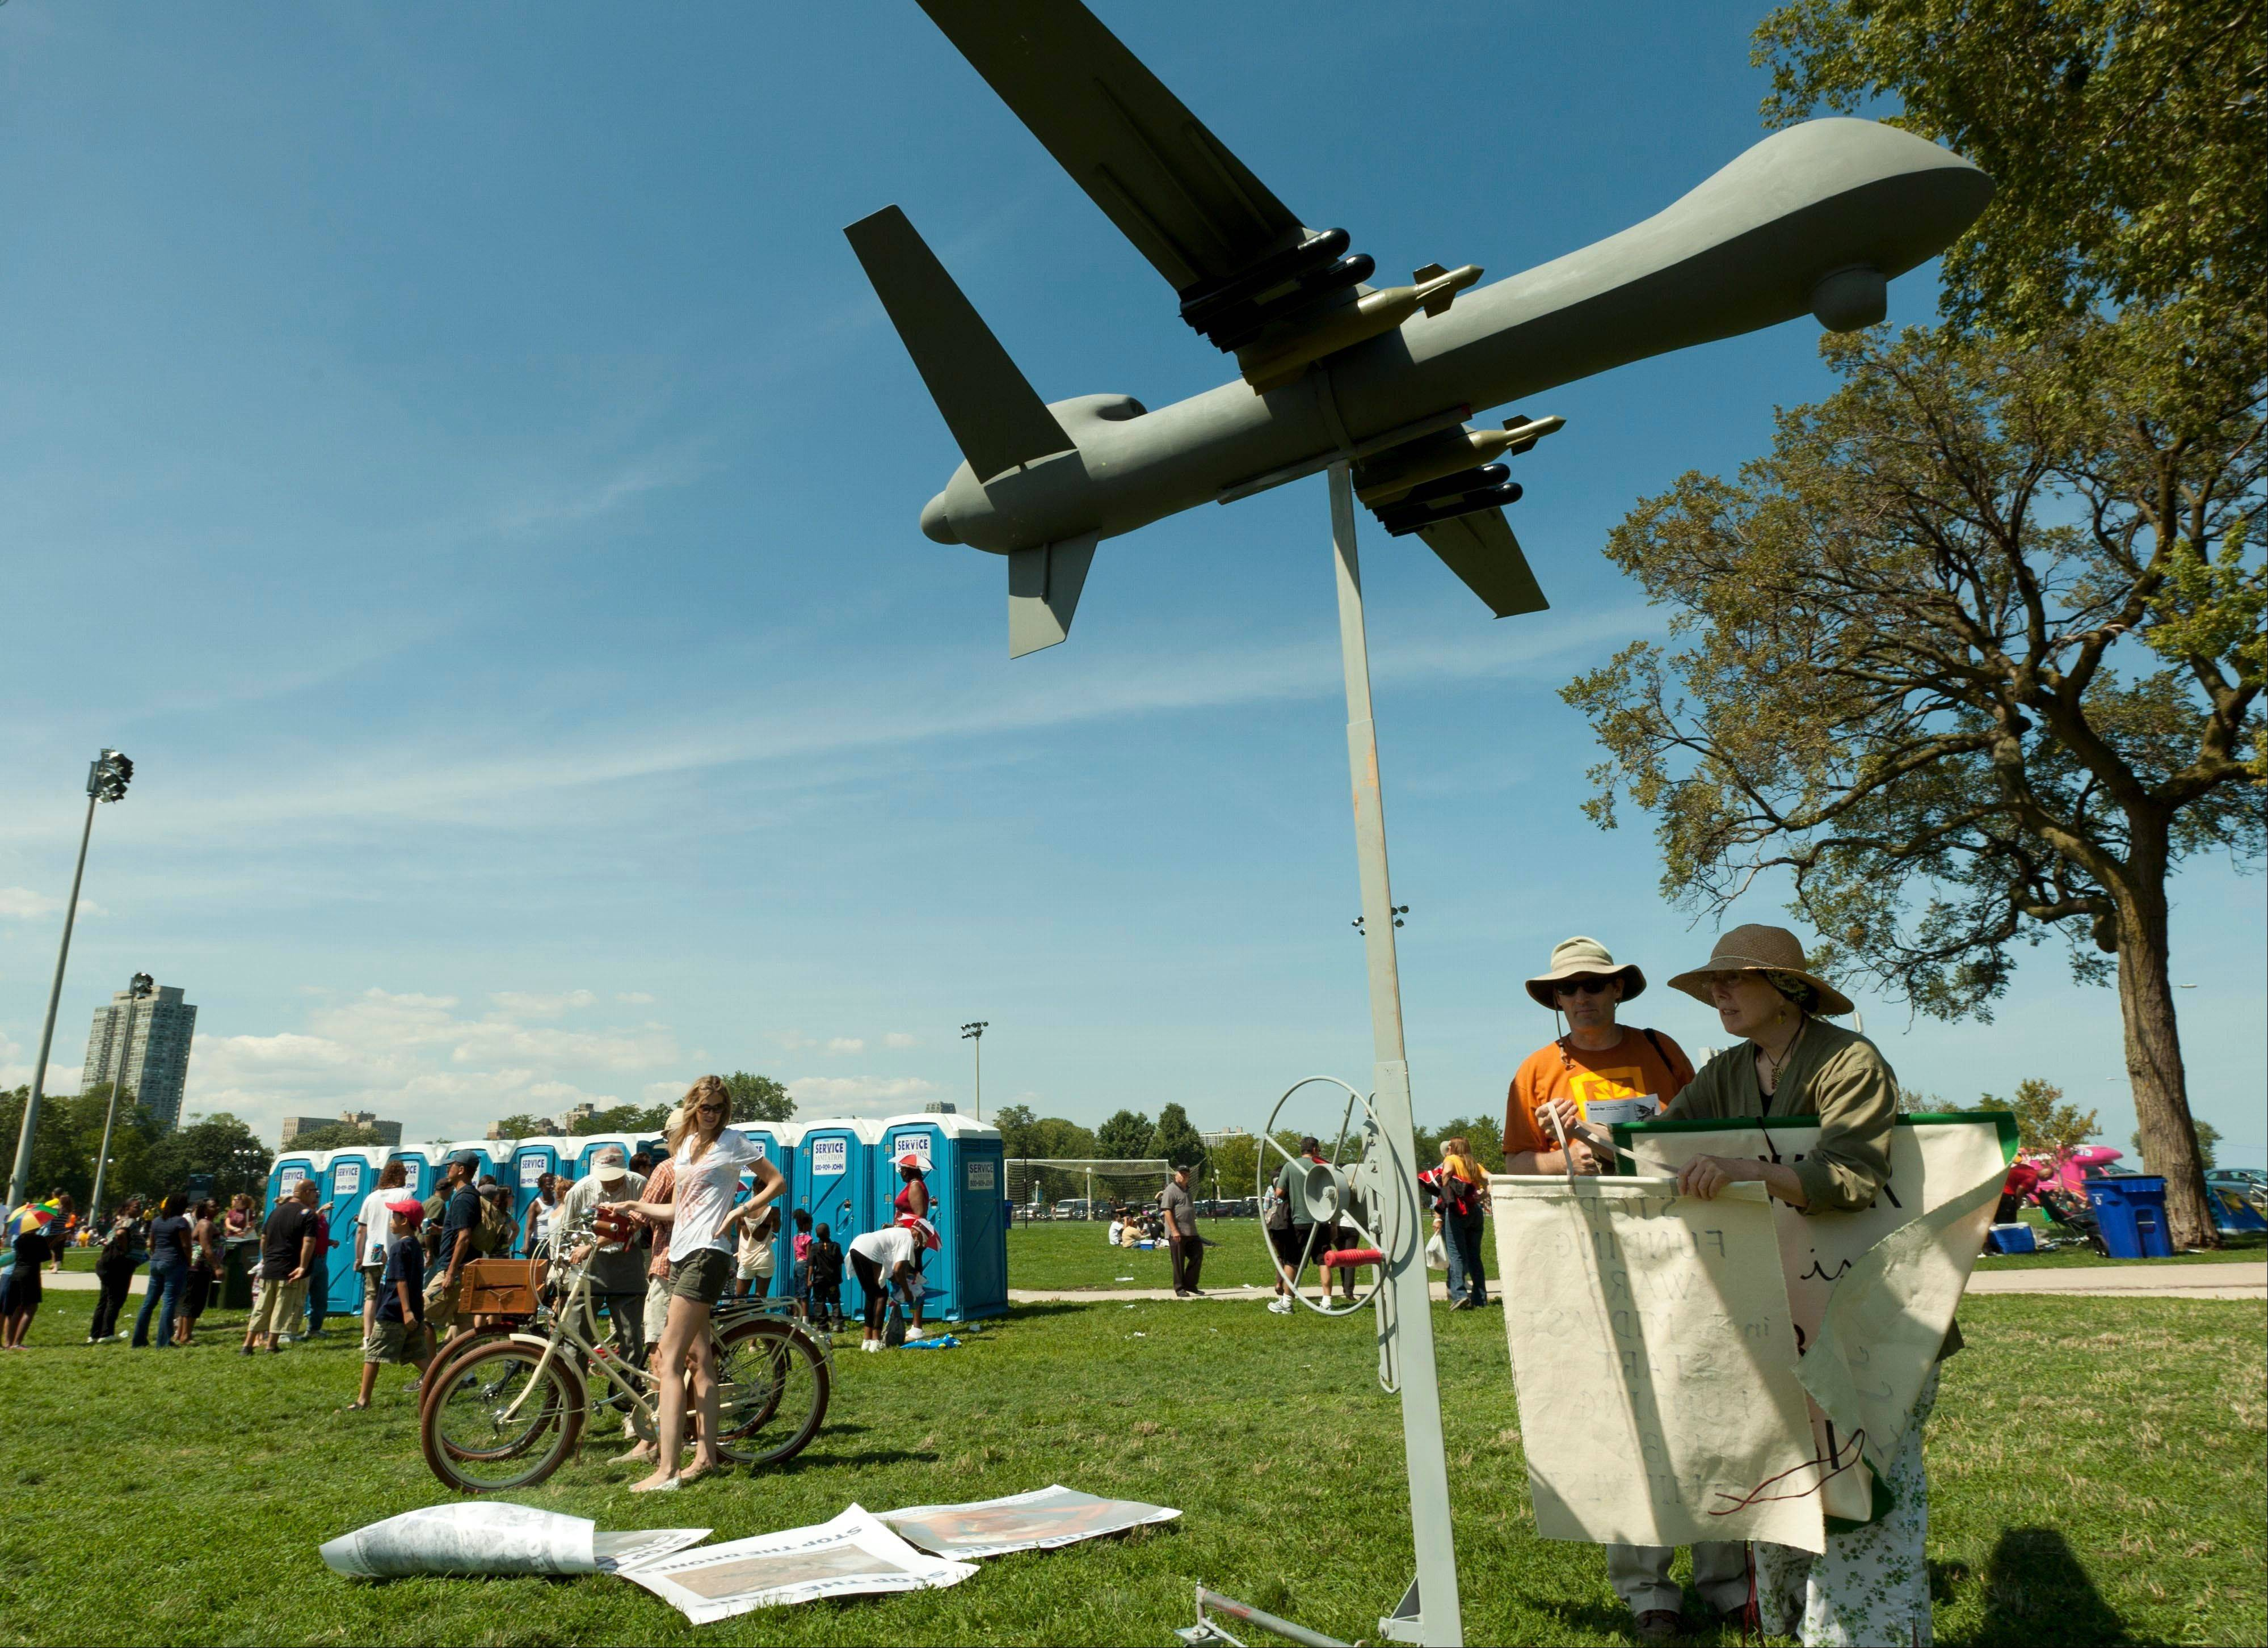 Opponents to the U.S. military's use of drones in warfare set up a drone replica display to present their case to people attending the Chicago Air and Water Show on Saturday, Aug. 18, 2012 in Chicago. They say that one in four people killed by drones have been children.